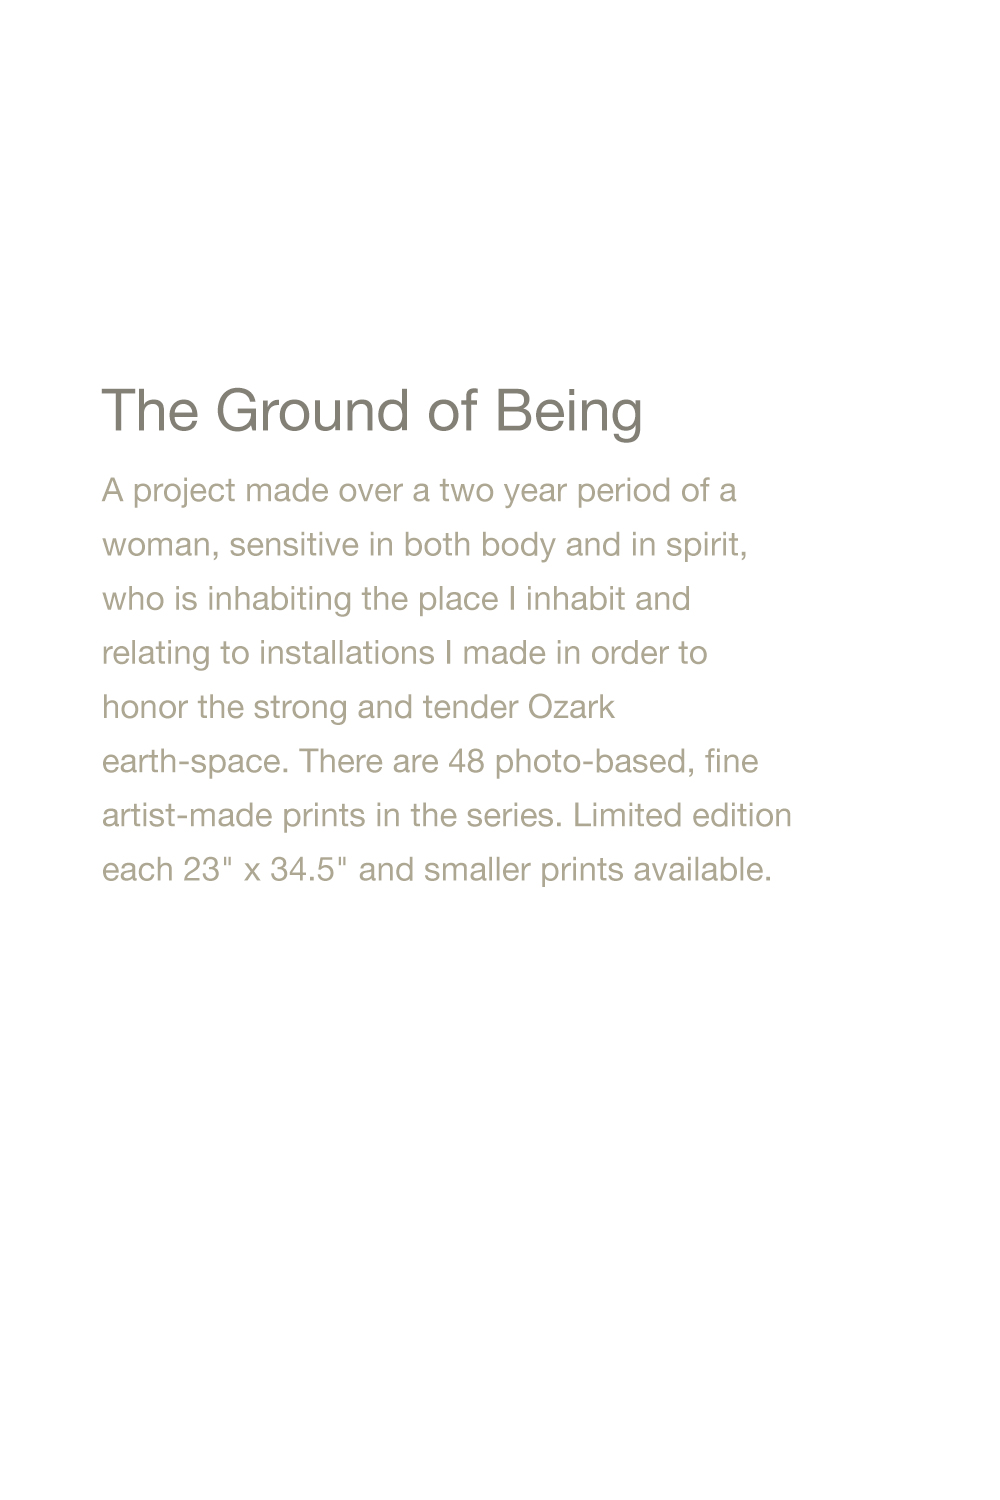 Ground-of-Being-1000x1500.jpg